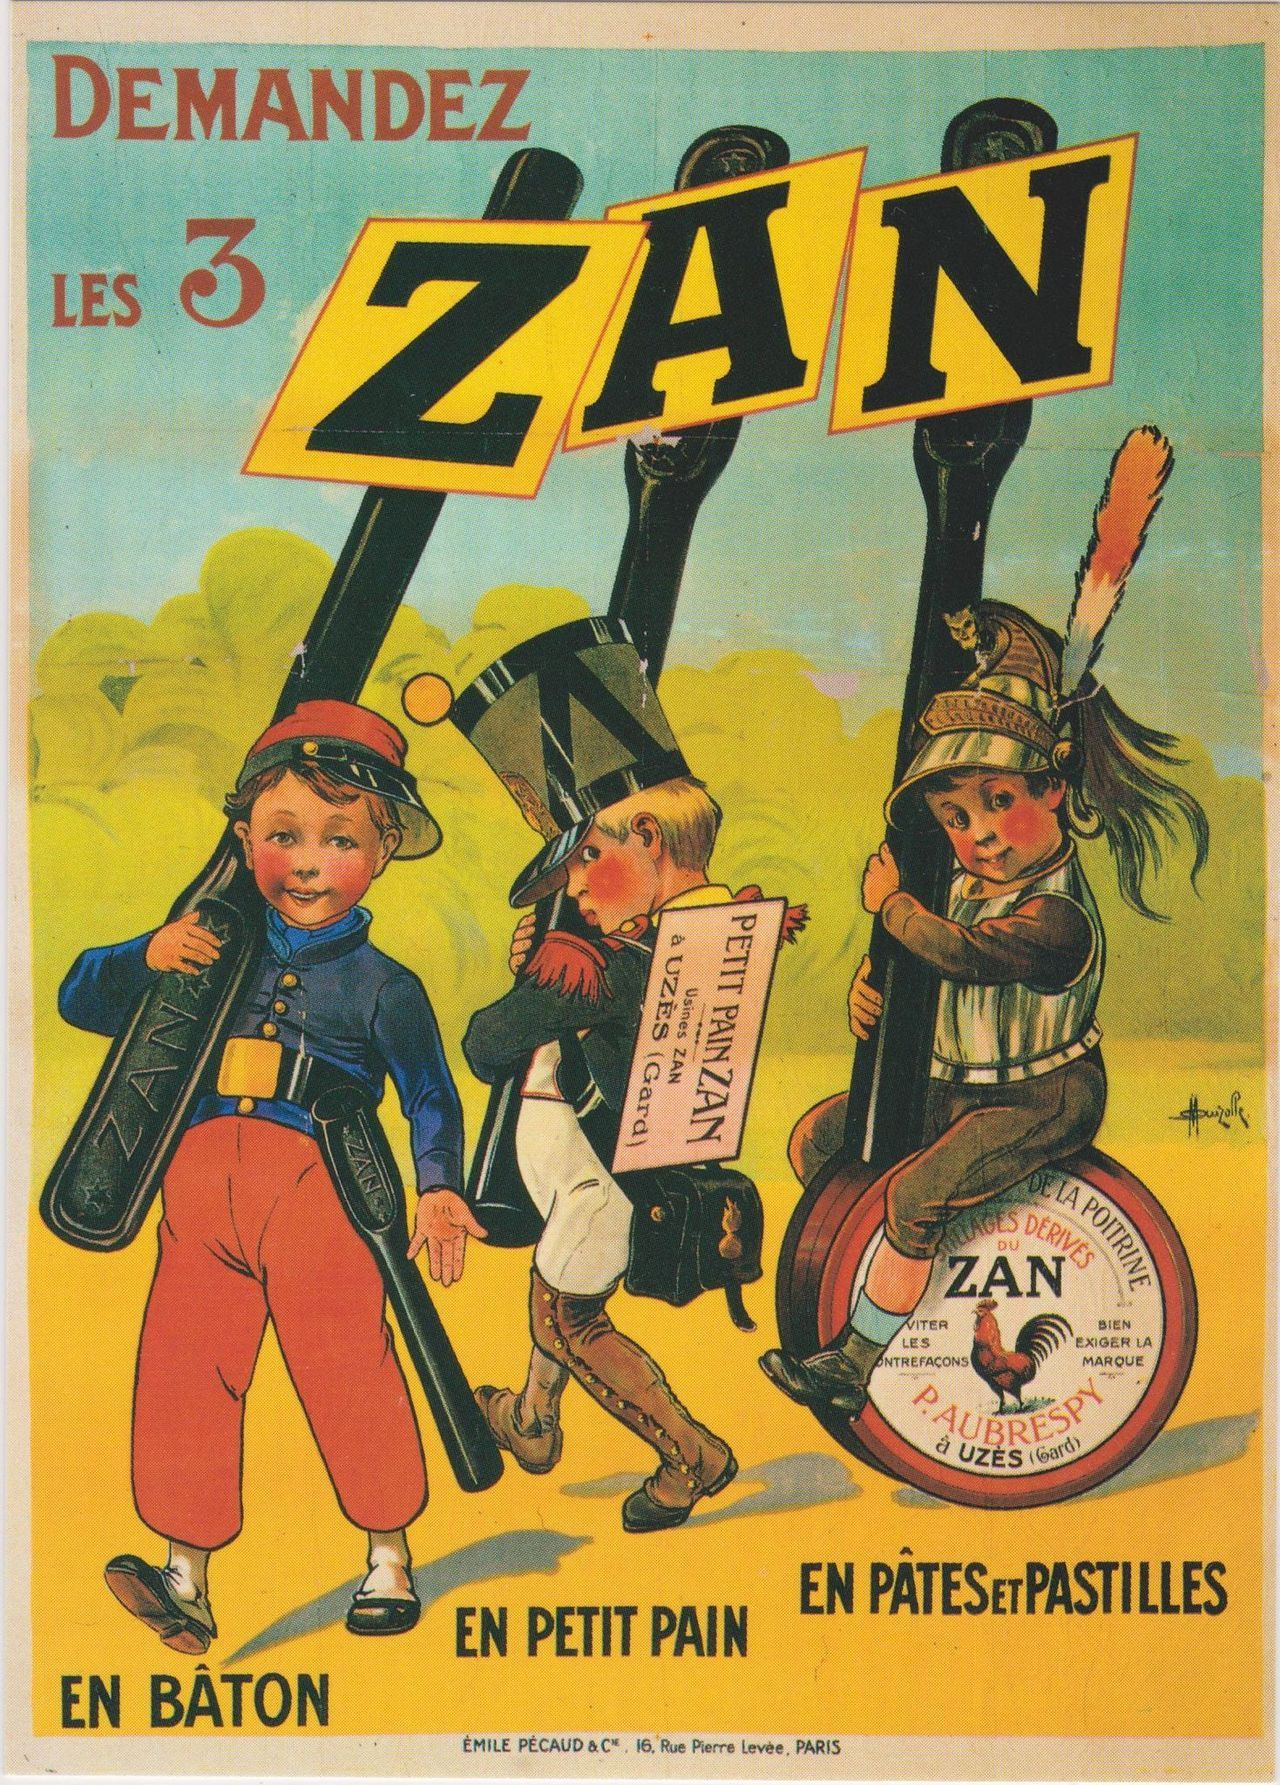 zan publicit anciennes affiches et panneaux publicitaires pinterest vintage ads and. Black Bedroom Furniture Sets. Home Design Ideas